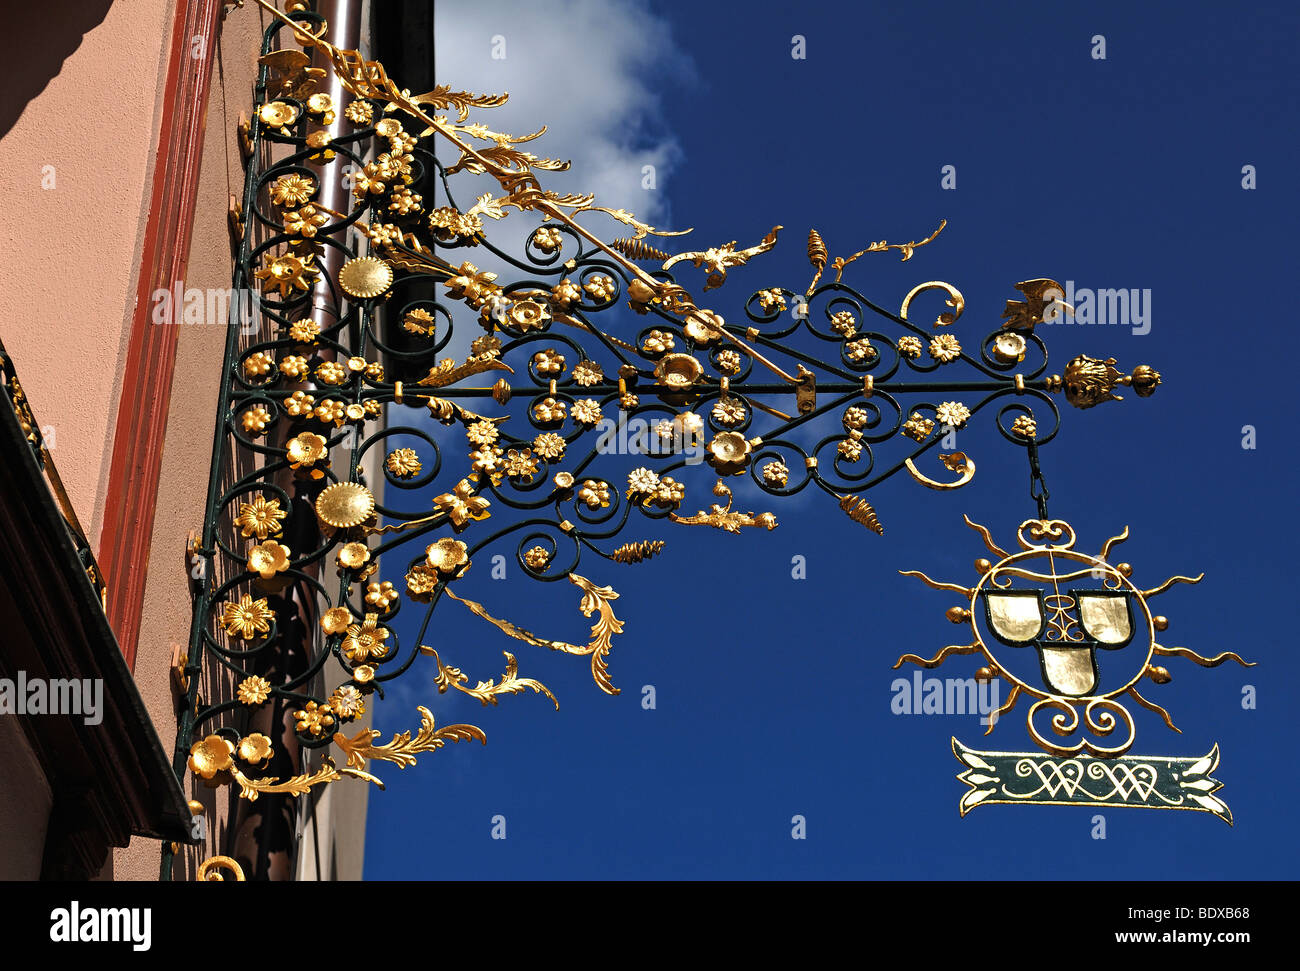 Ornate hanging sign of a craft business, Nuremberg, Middle Franconia, Bavaria, Germany, Europe - Stock Image